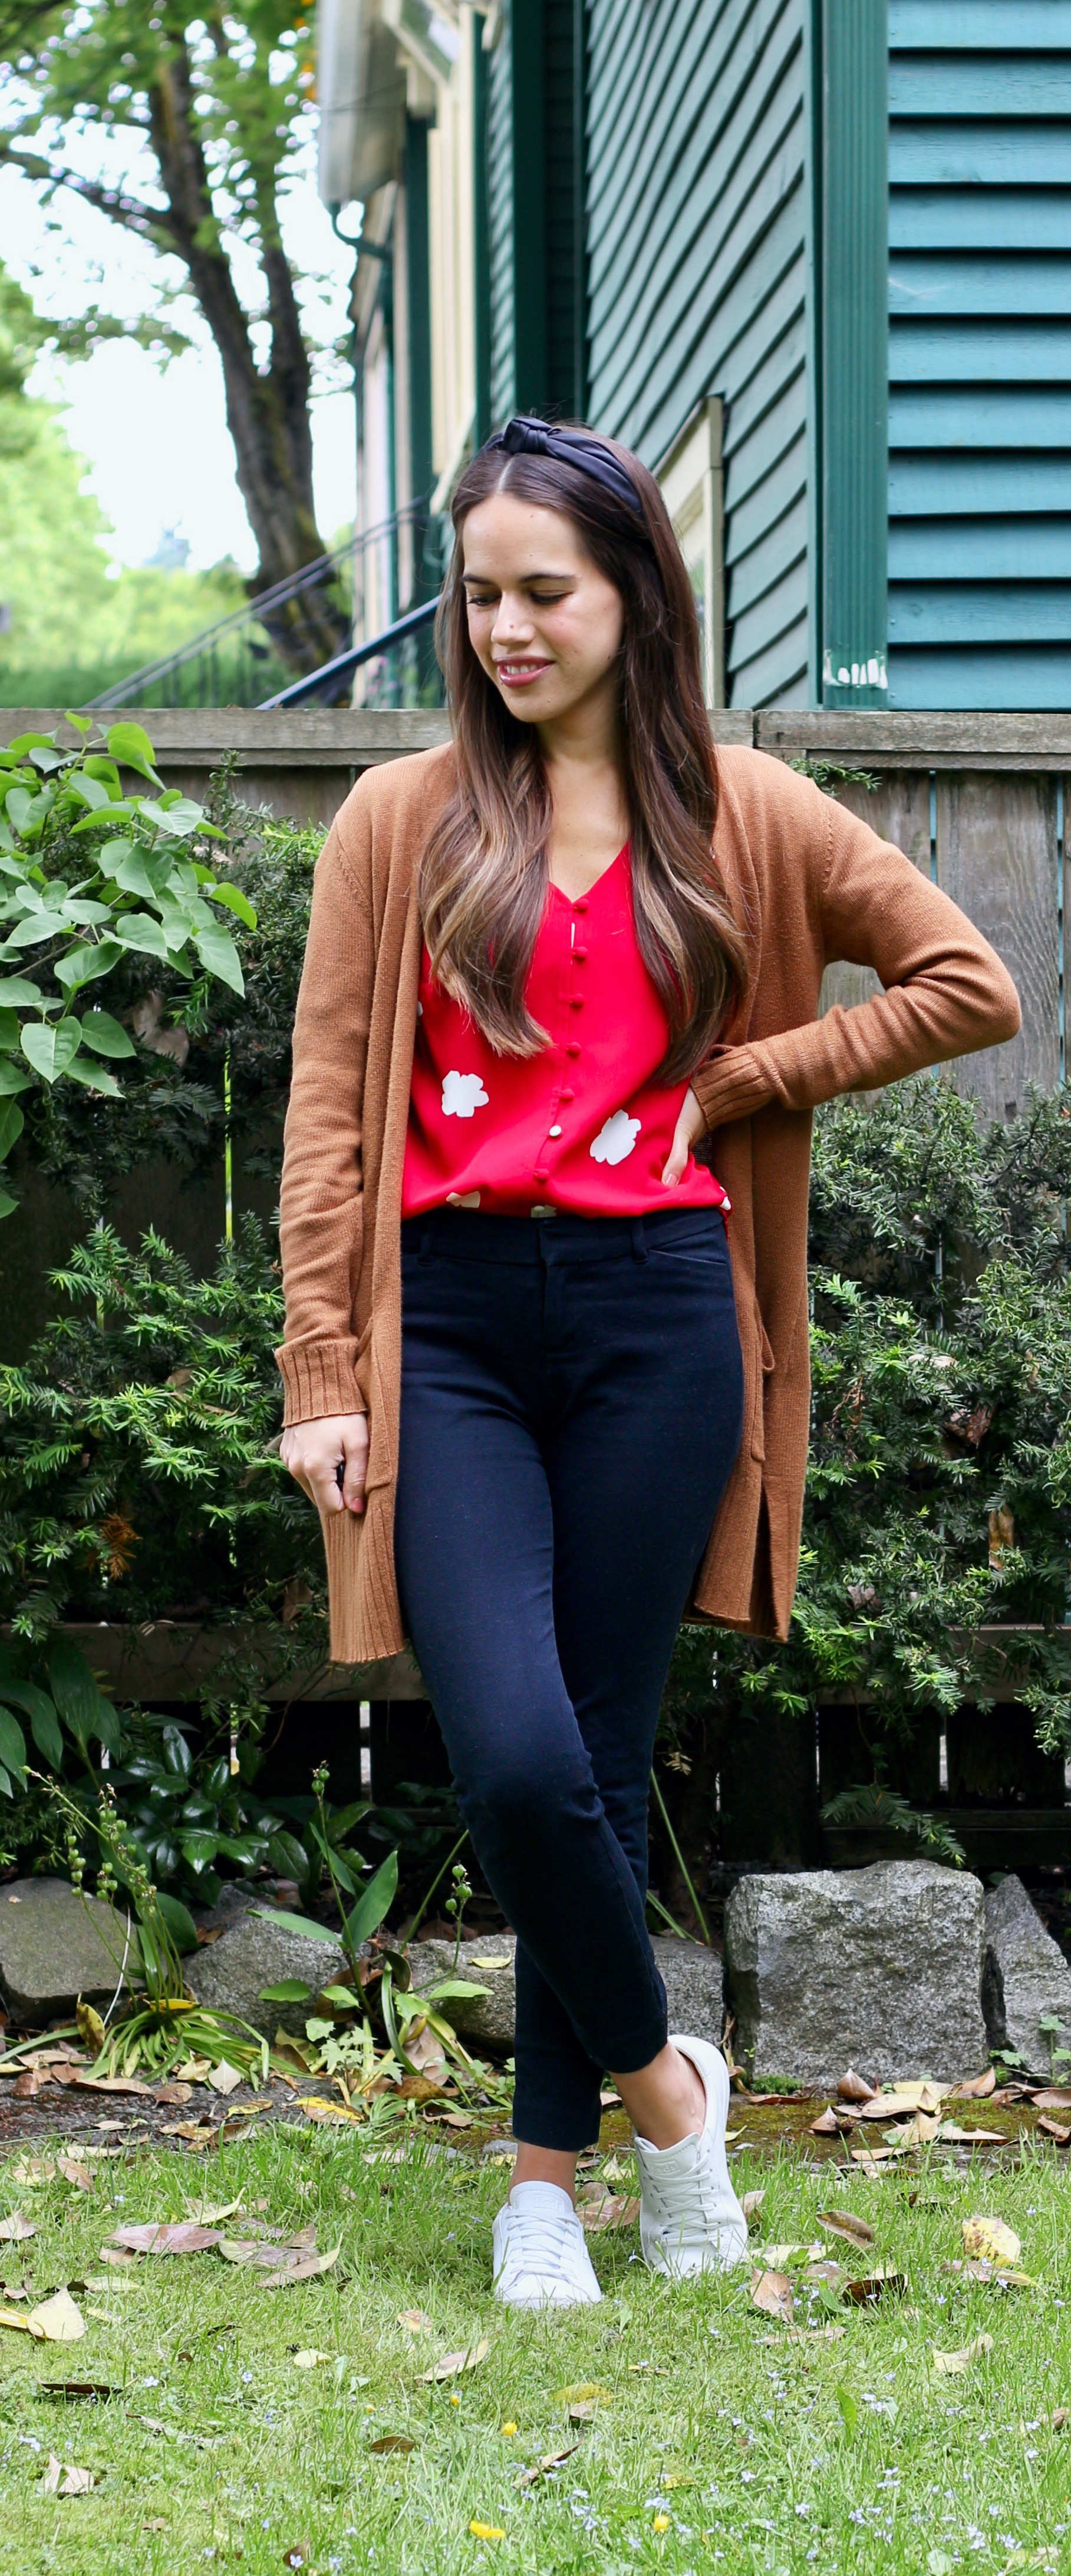 Jules in Flats - Red Floral Blouse with Black Ankle Pants and Headband